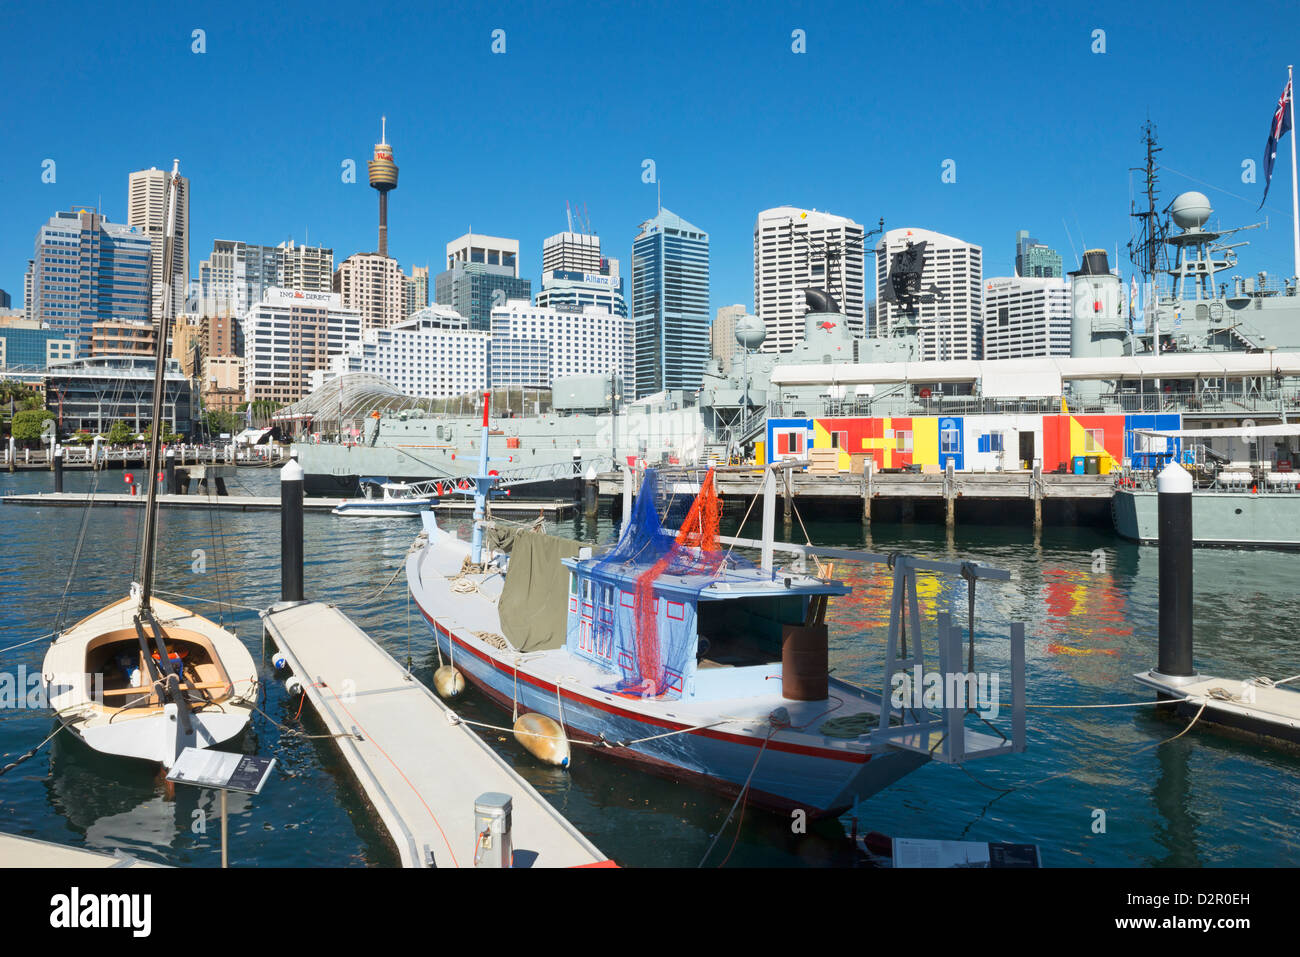 Darling Harbour, Sydney, Nouvelle-Galles du Sud, Australie, Pacifique Photo Stock